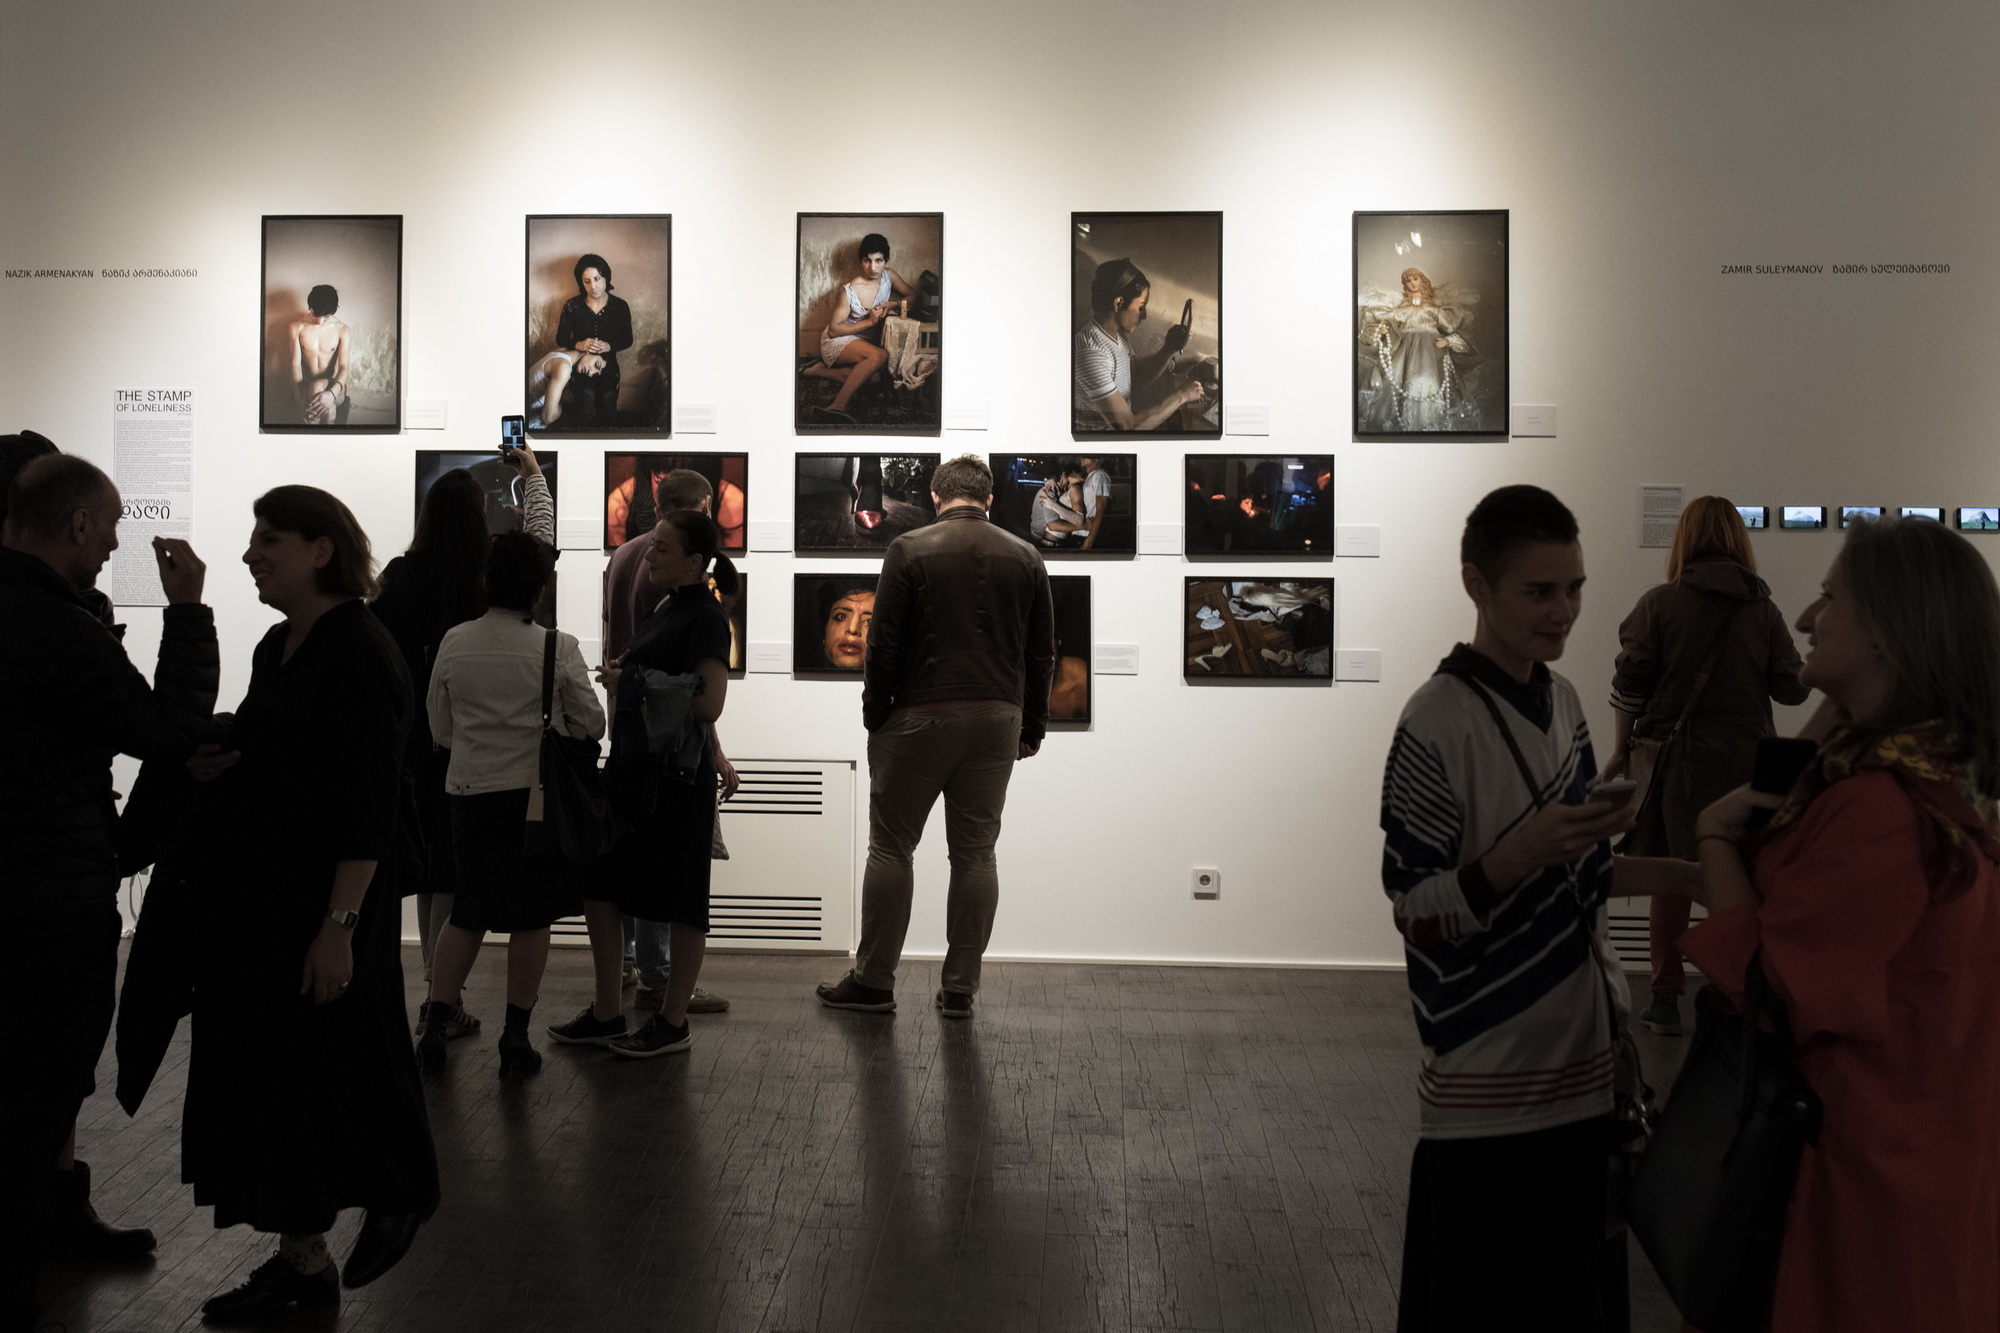 Printed Exhibition of South Caucasian Photographers